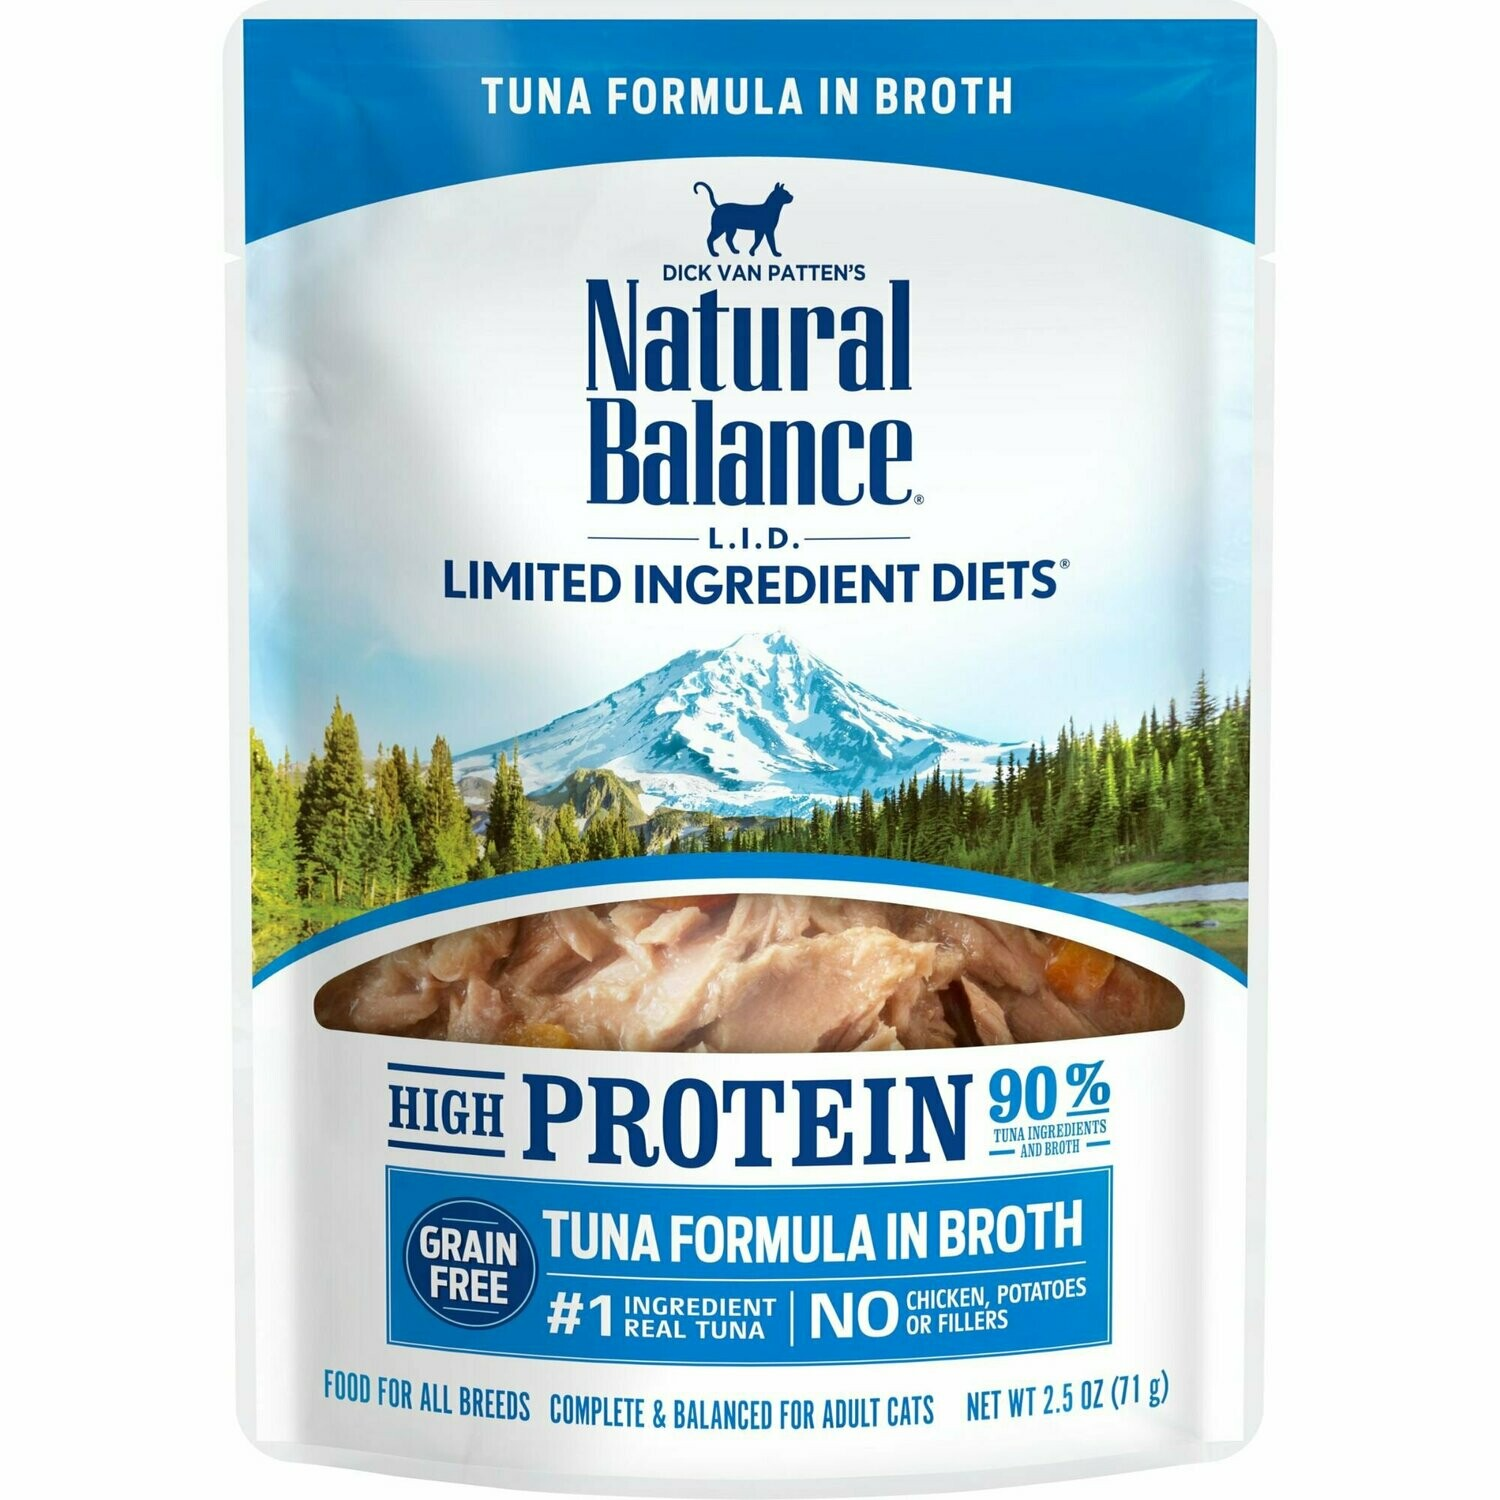 Natural balance limited ingredients high-protein tuna formula in broth for cats adult cats 2.5 ounces 24 counts (10/19)